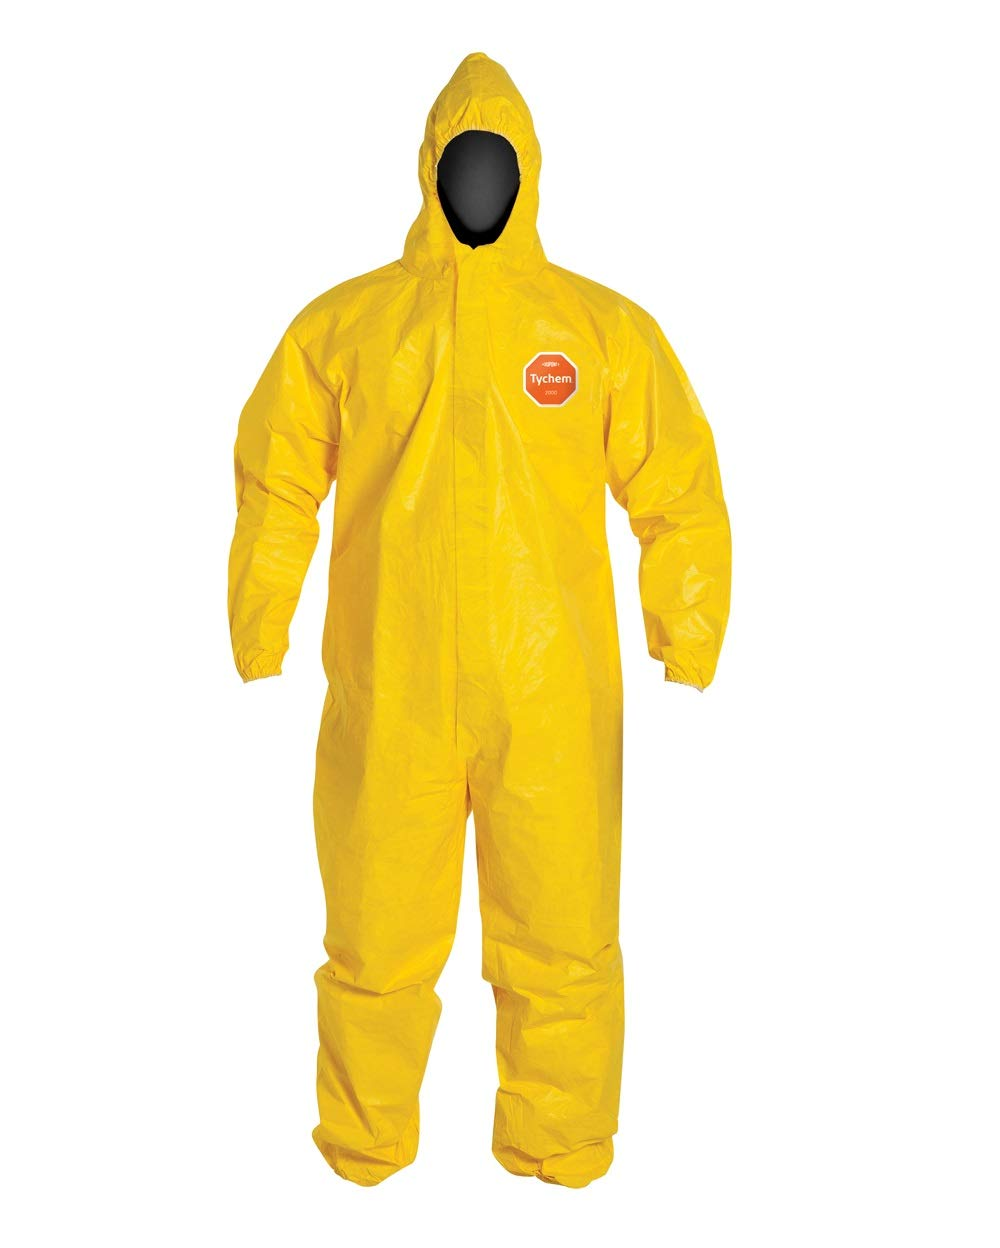 DuPont Tychem 2000 Standard Fit Hood Stormflap Elastic Wrists and Ankles Serged Seam, Yellow, 3XL, Pack of 1